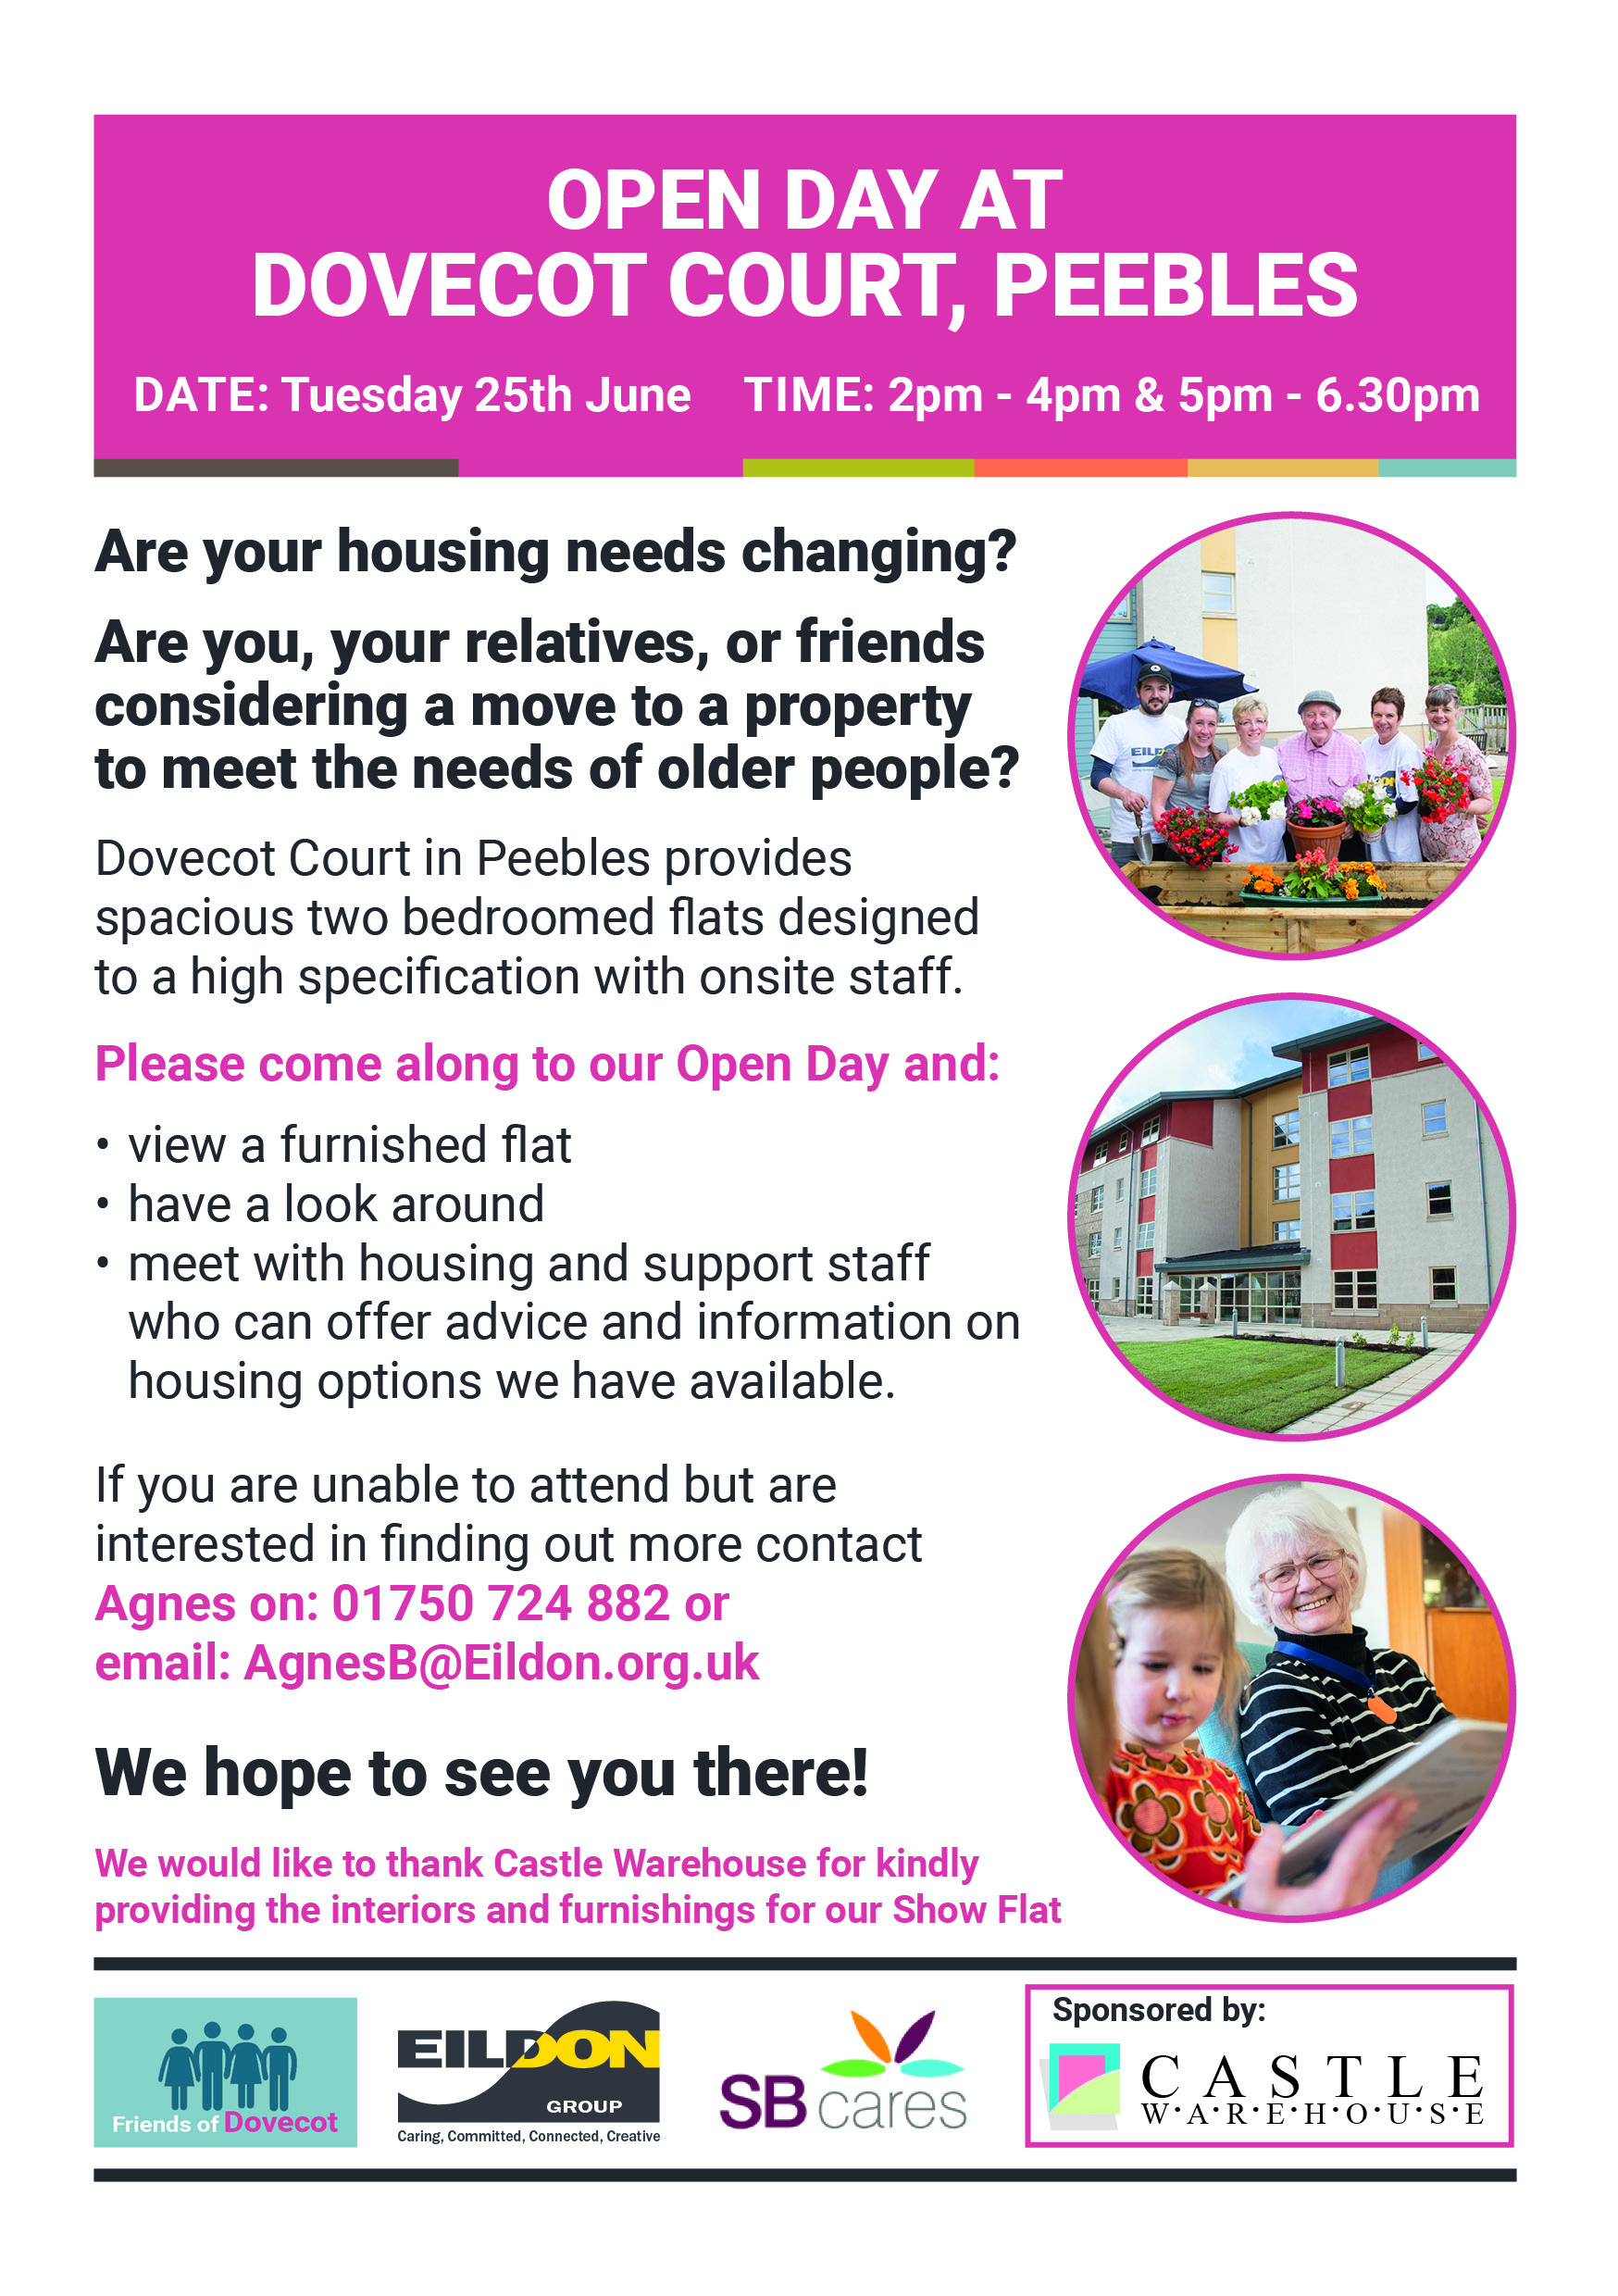 Open Day at Dovecot, Peebles